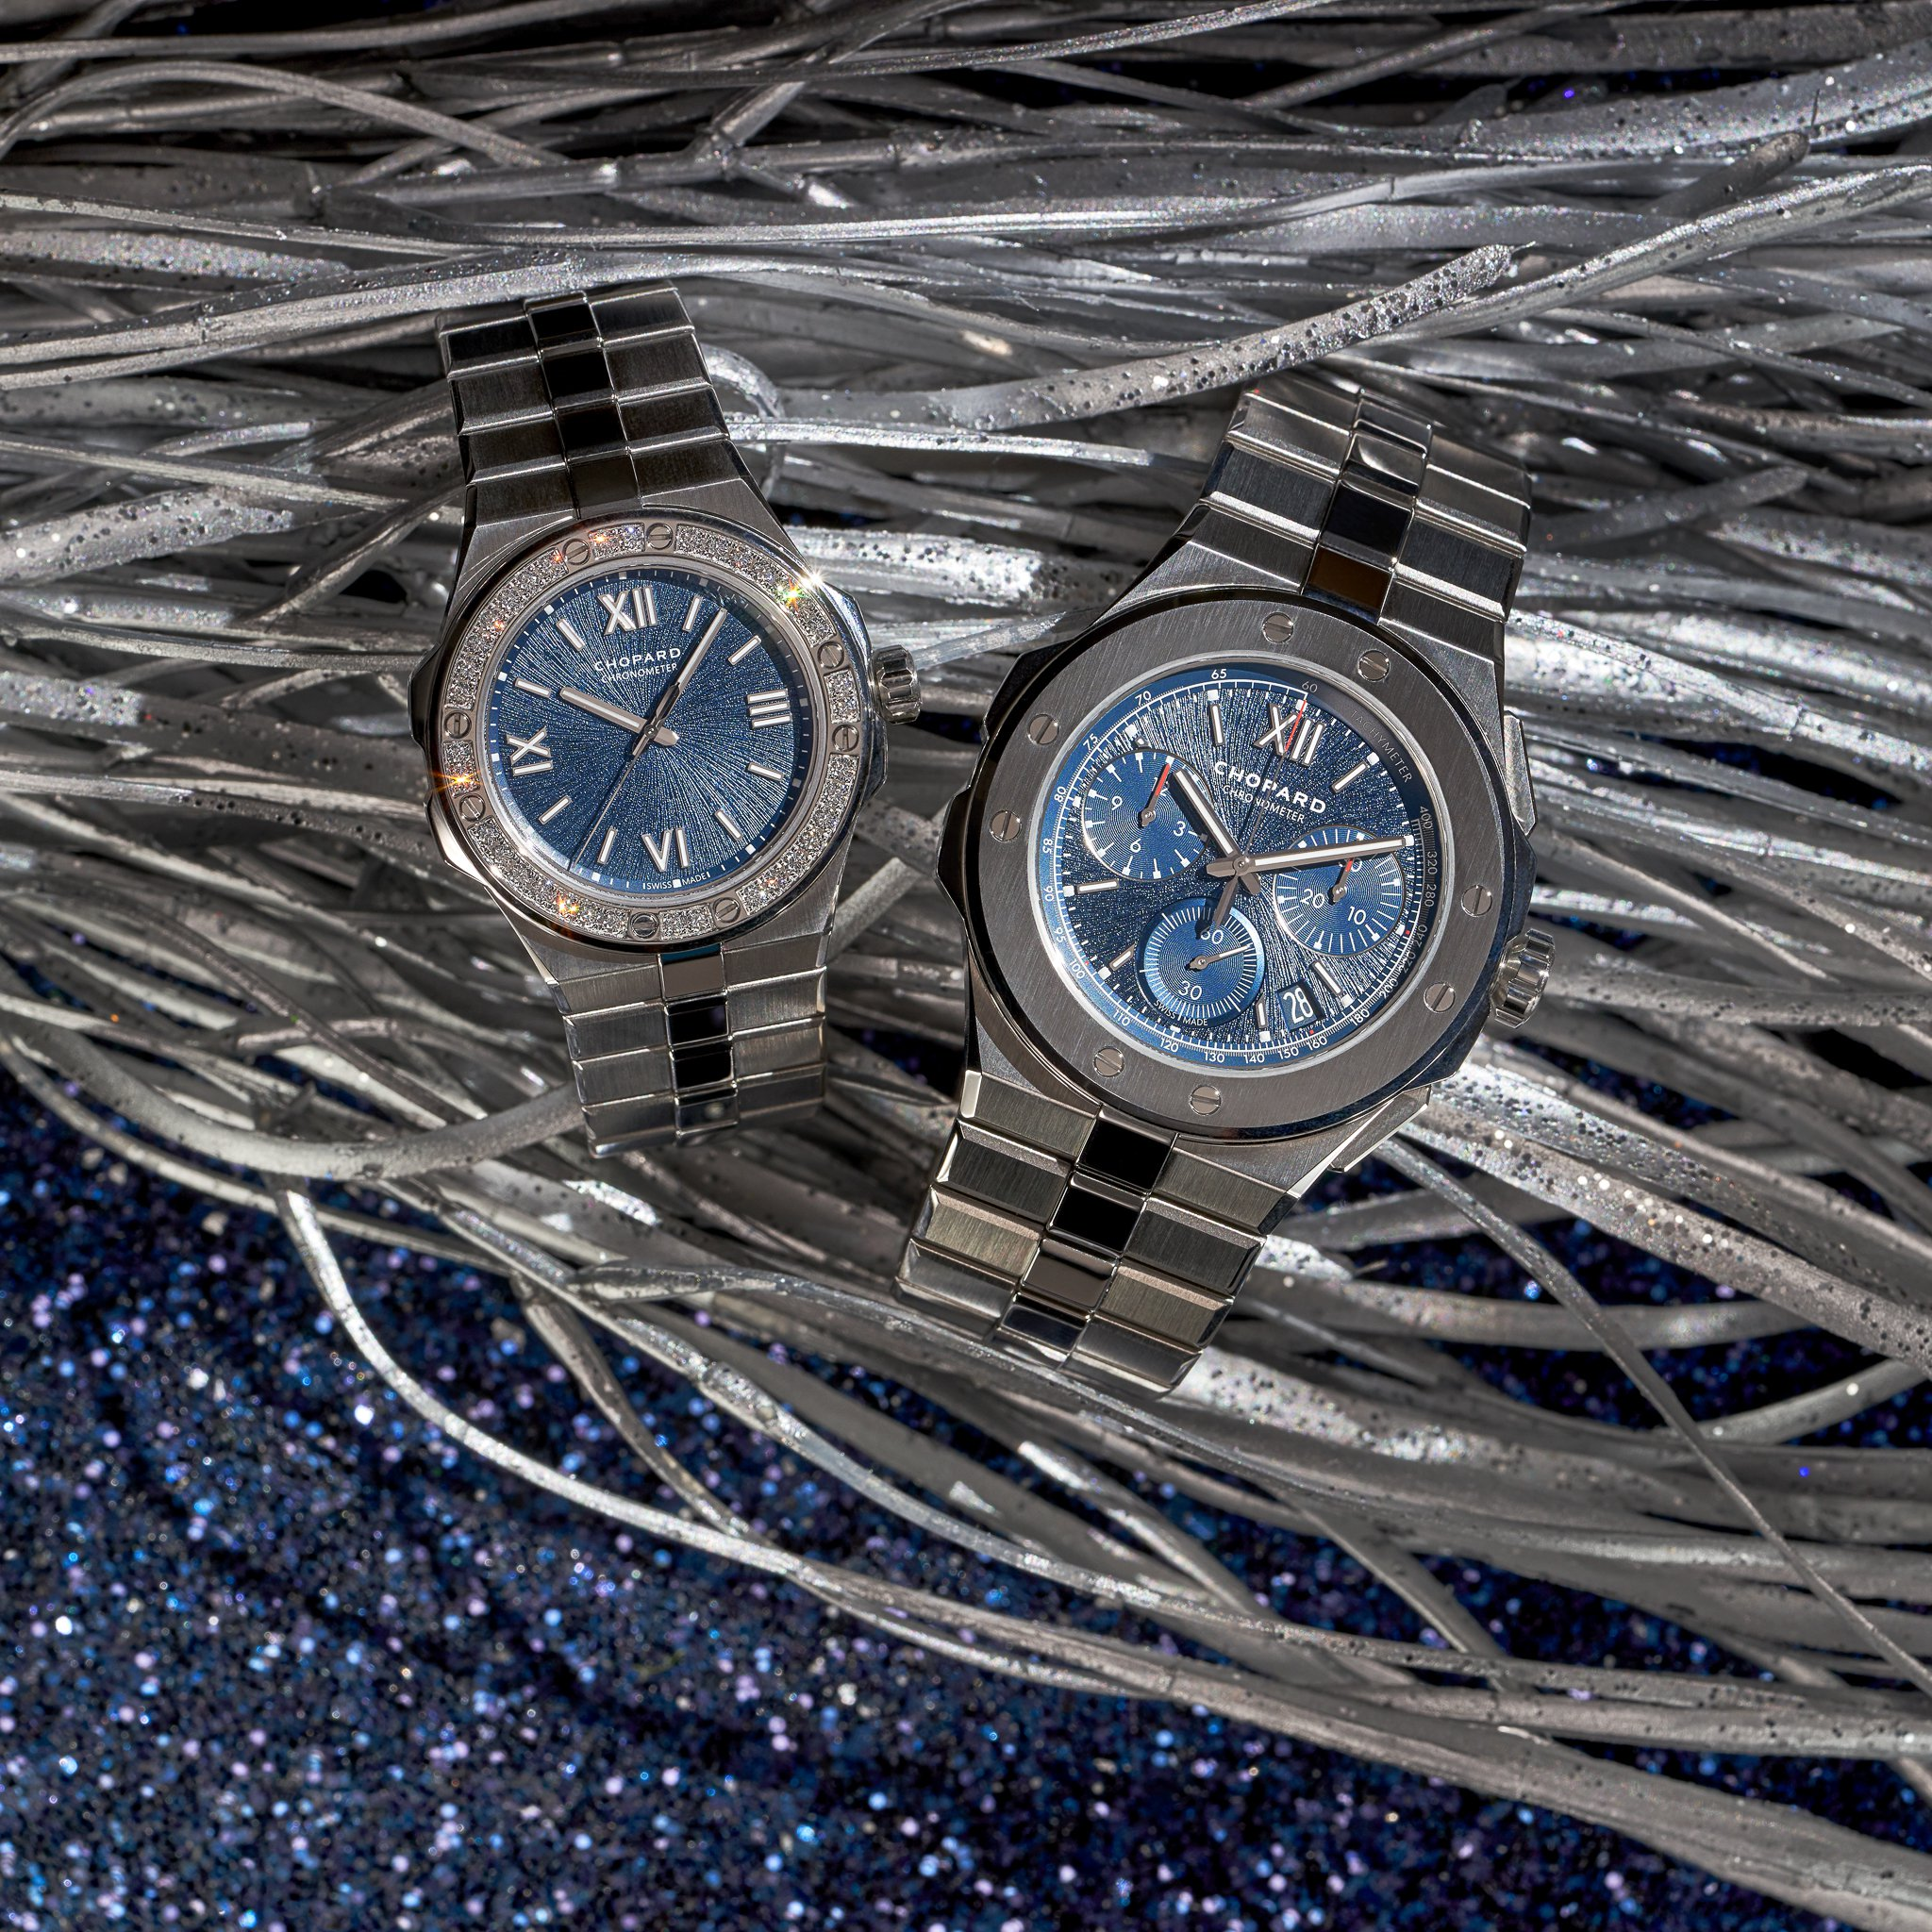 Chopard Alpine _Ahmed Seddiqi & Sons_Gifting.jpeg